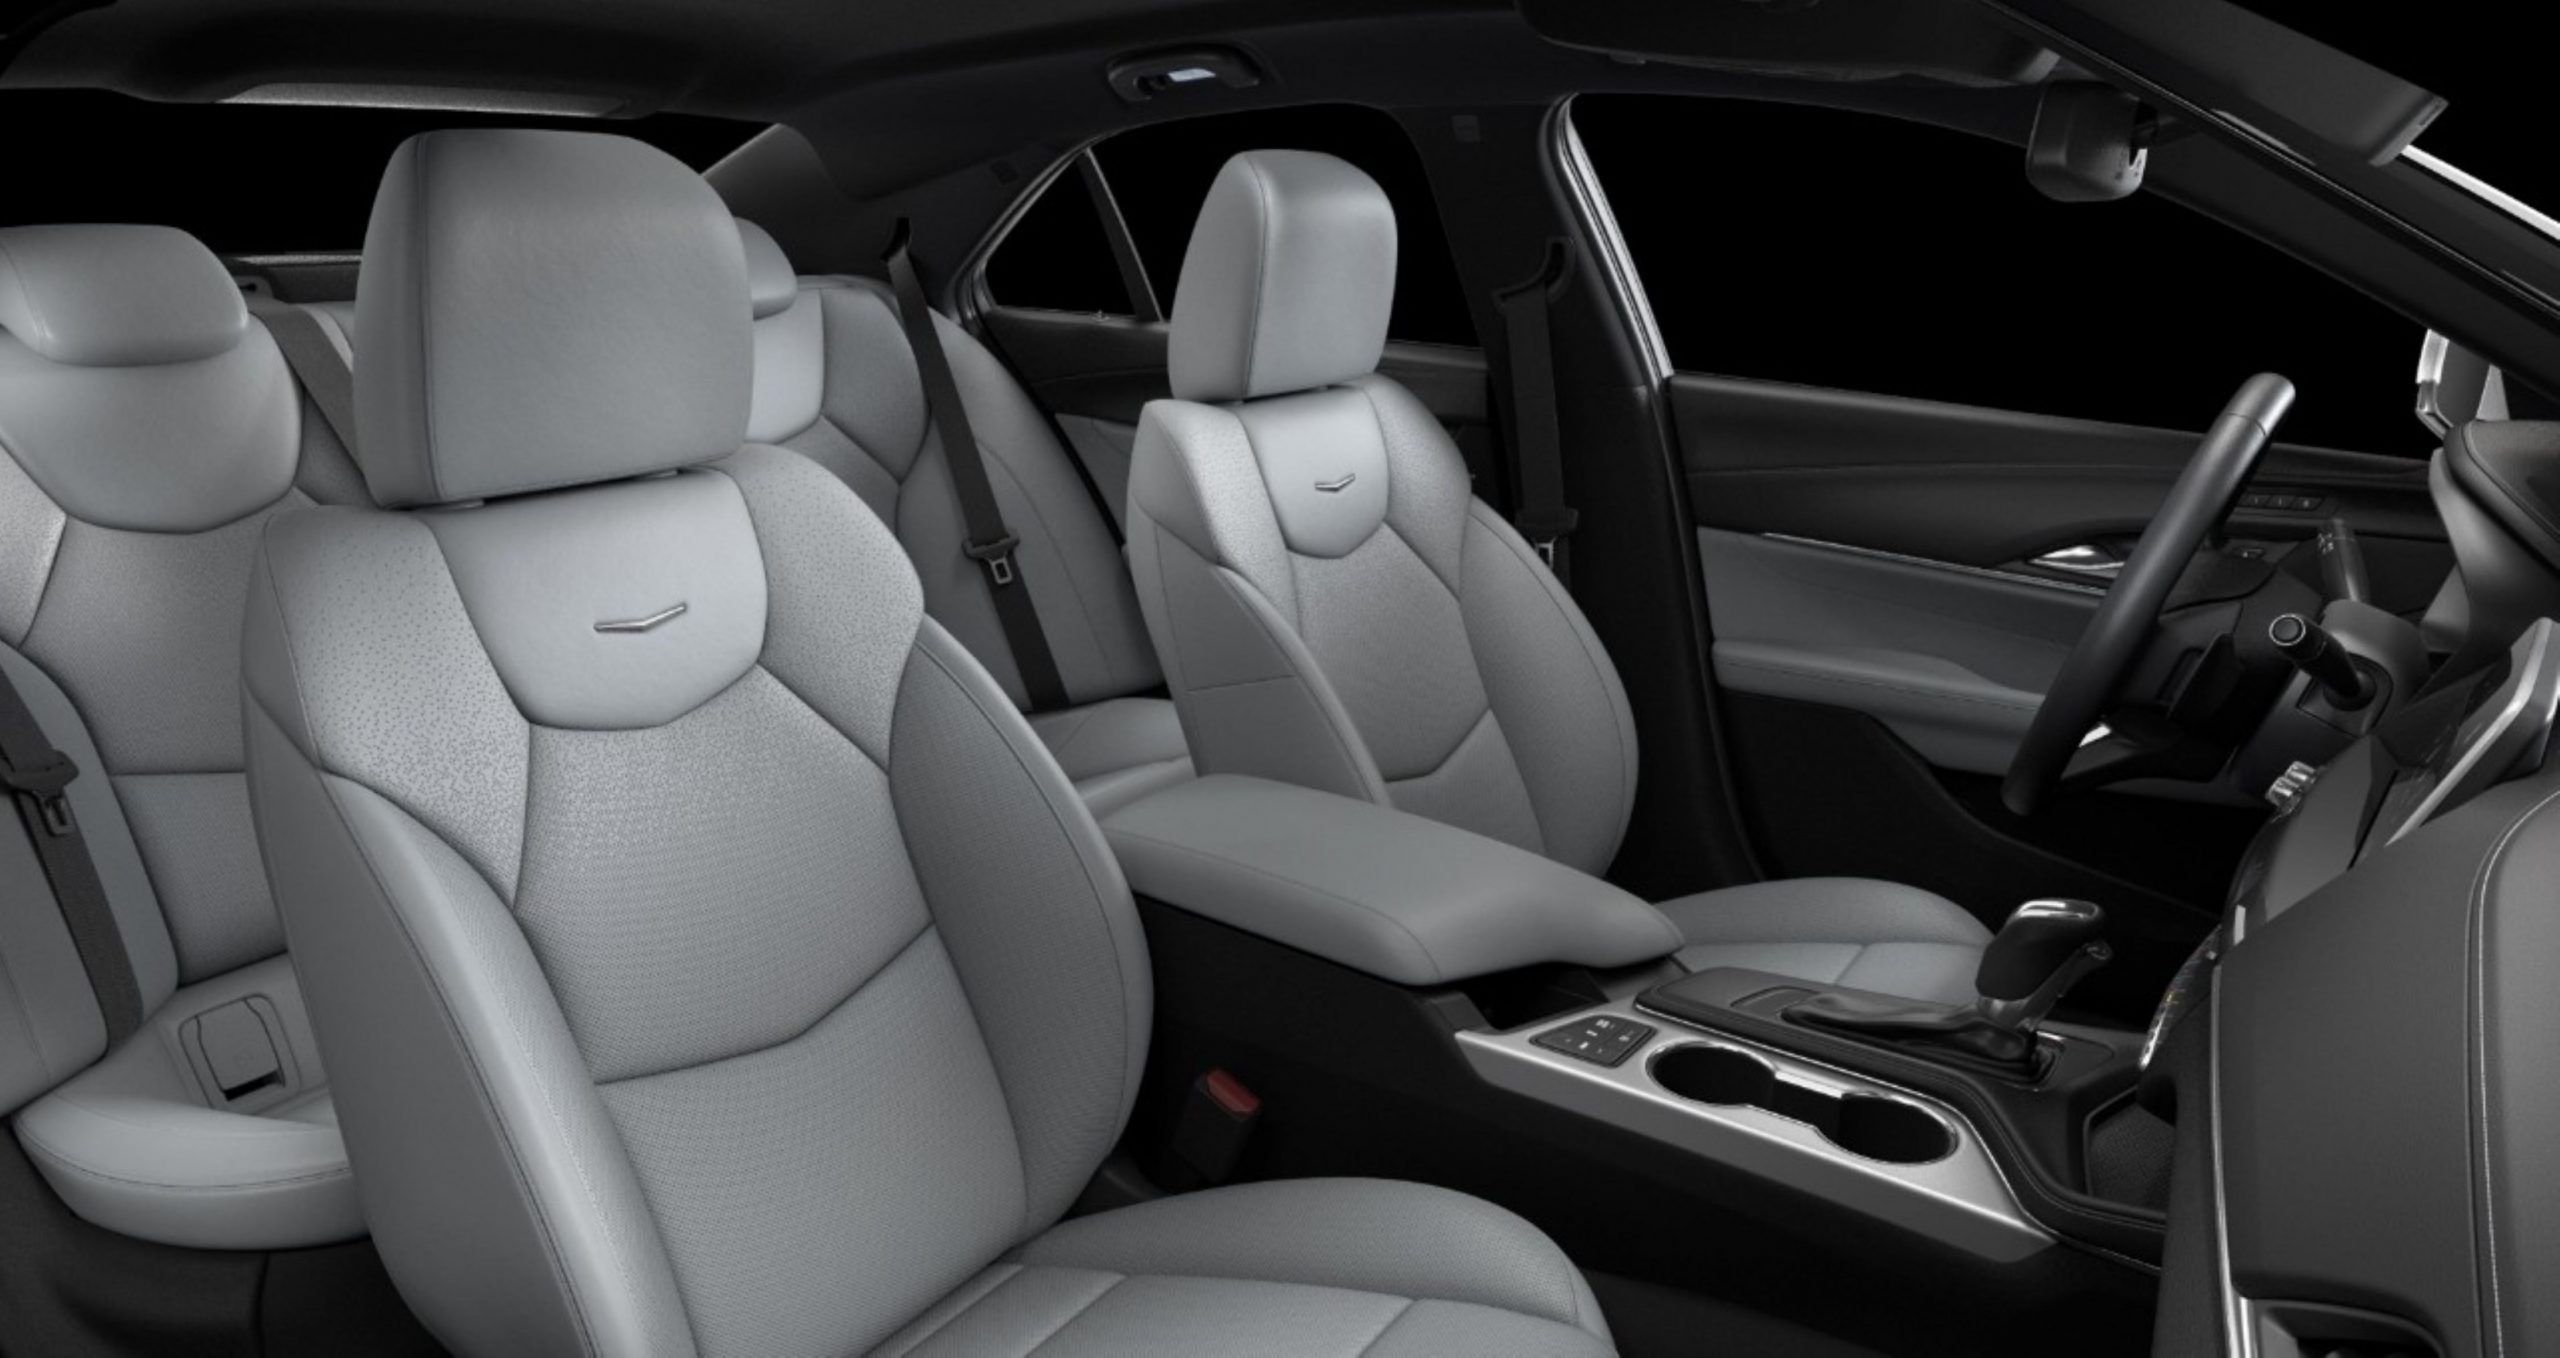 5 Cadillac CT5 and CT5 Add More Tech, Safety and Design - 2021 Cadillac Ct5 Interior